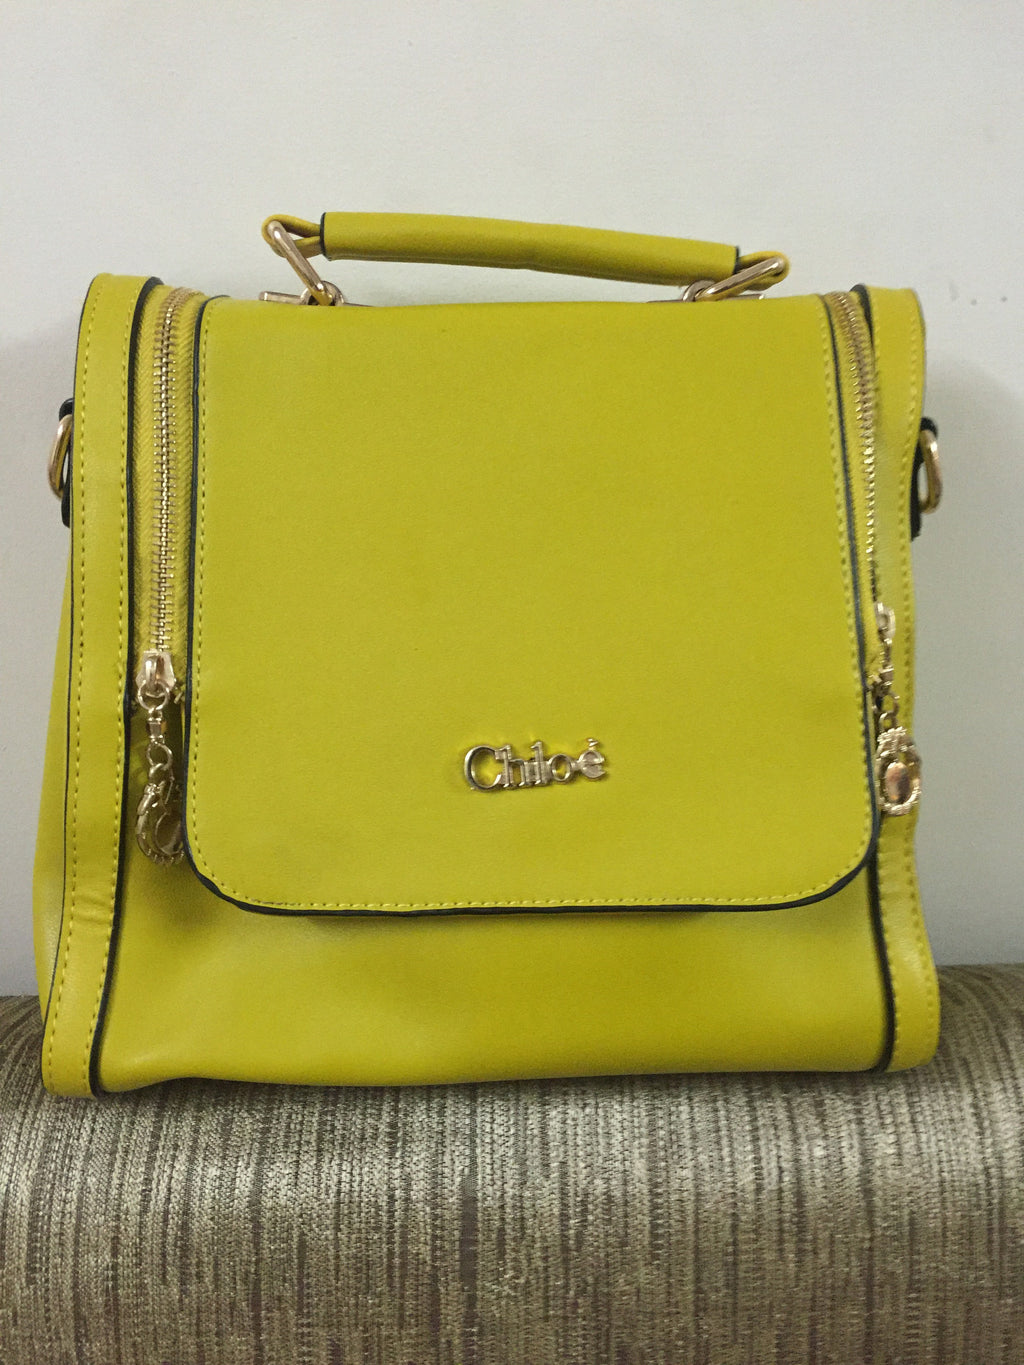 Mustard Yellow Small Hand Bag - #FTFY - For The Fun Years